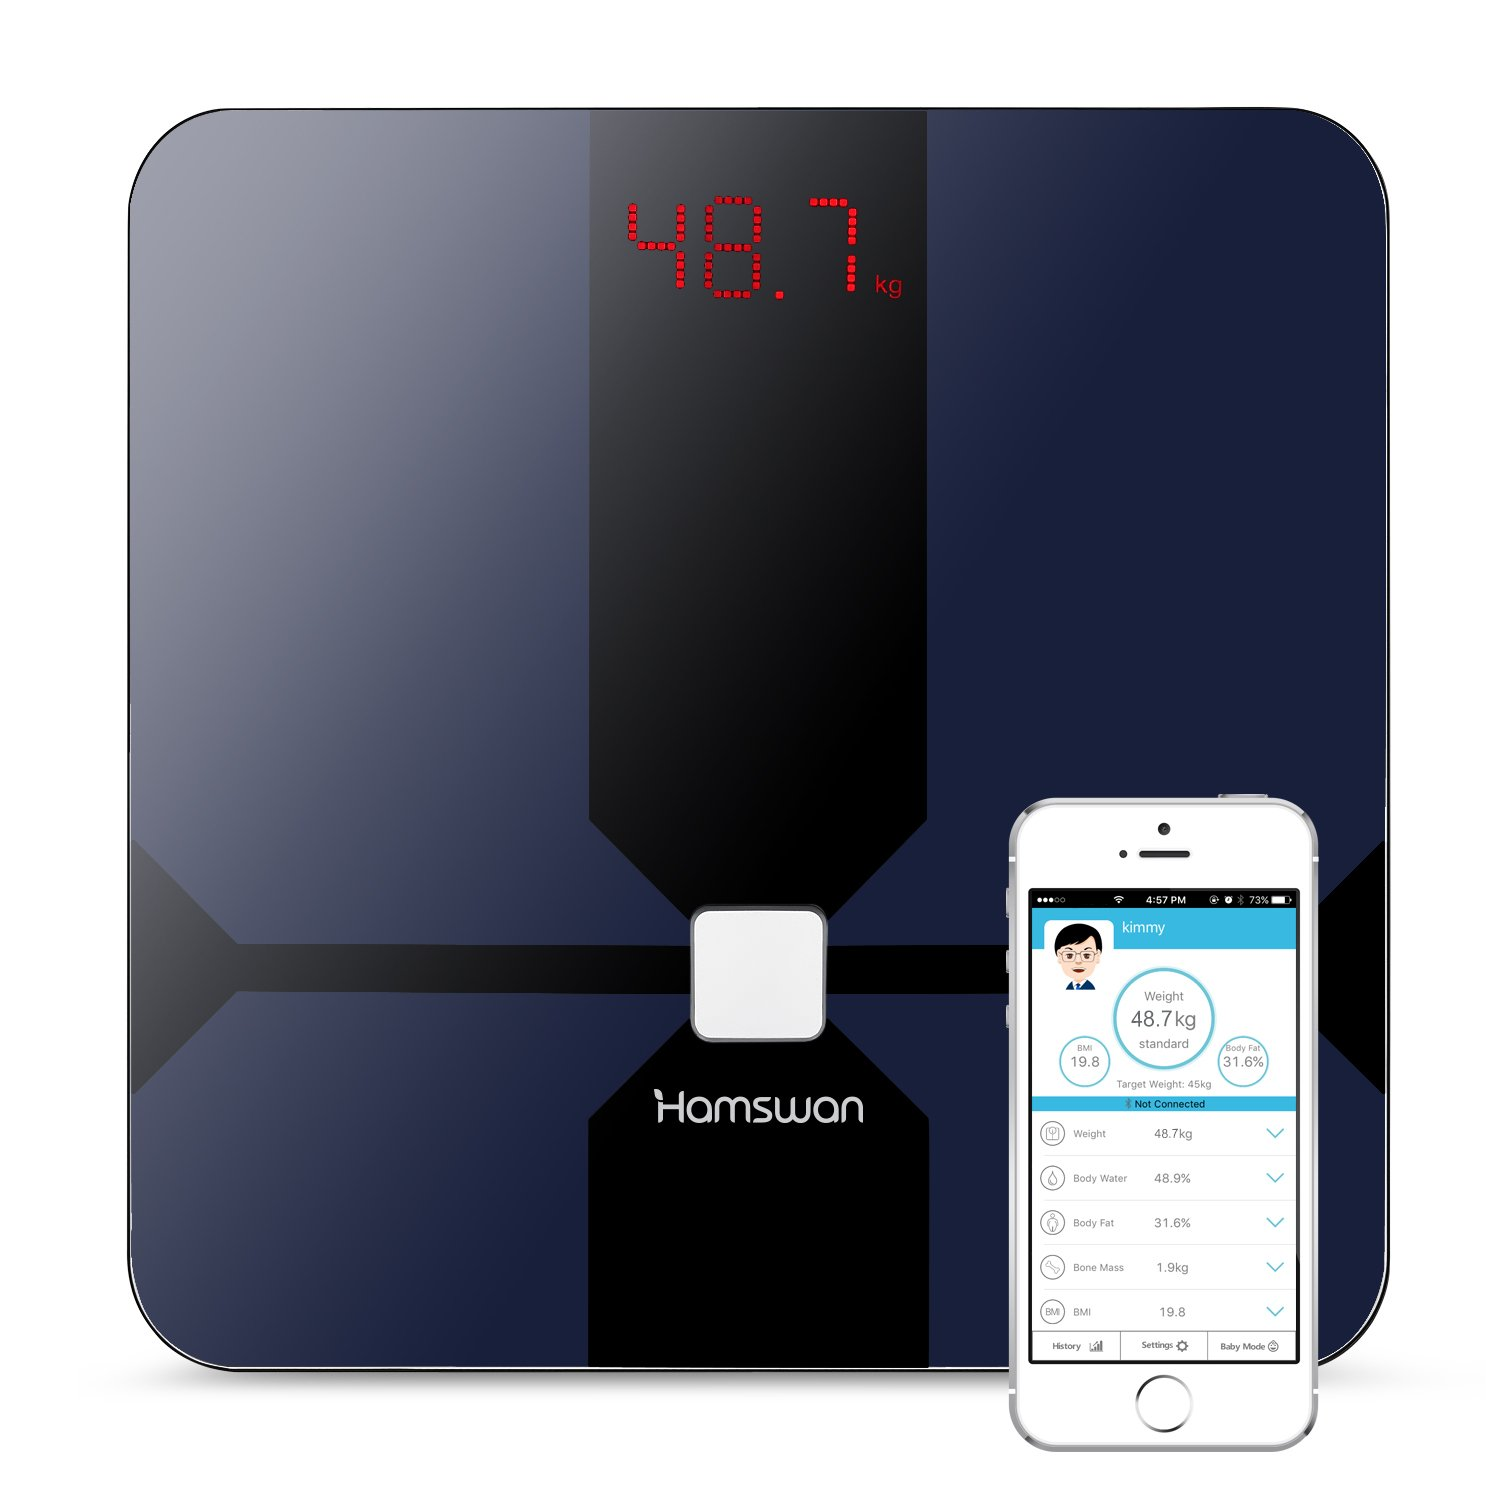 Body Weight Scale, HAMSWAN Bluetooth Body Fat Scale, Smart Wireless Scale Digital Bathroom Weight Scale, Body Composition Analyzer, 180KG/397lbs, for IOS and Android App, Measuring Weight, Fat, Water, BMI, Muscle Mass, Bone Mass and Visceral Fat